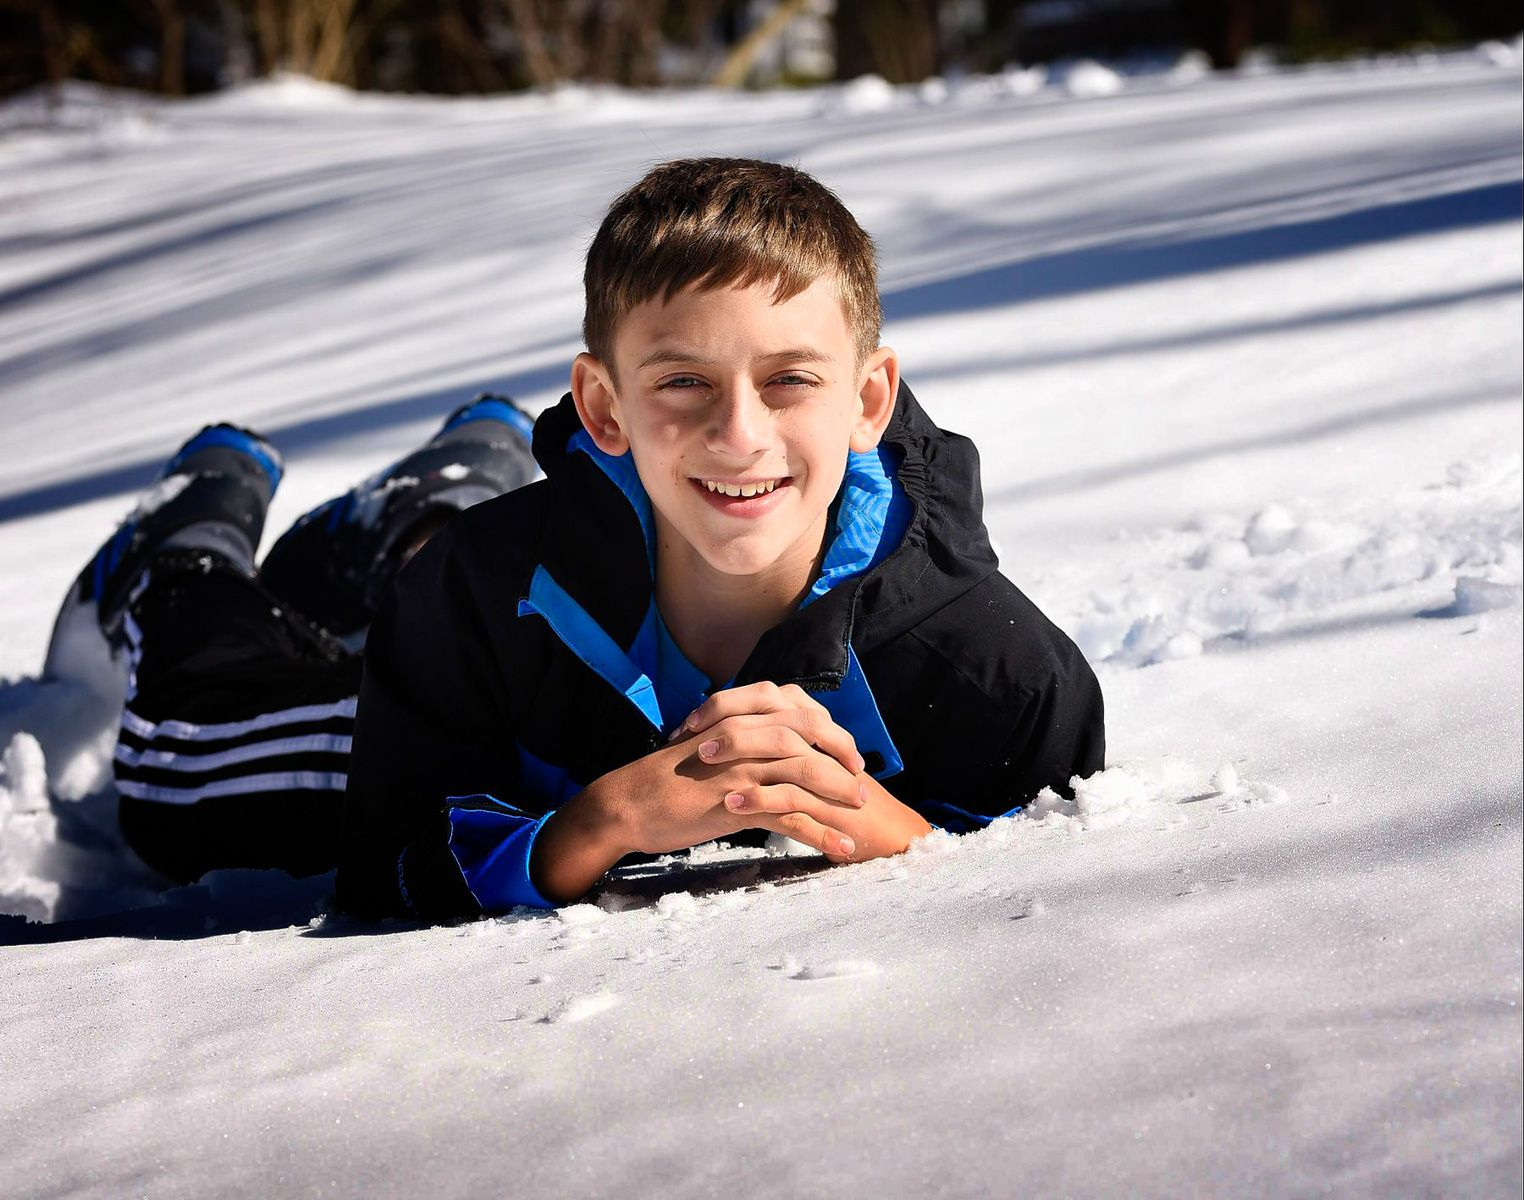 New York Bar Mitzvah Portrait In The Snow